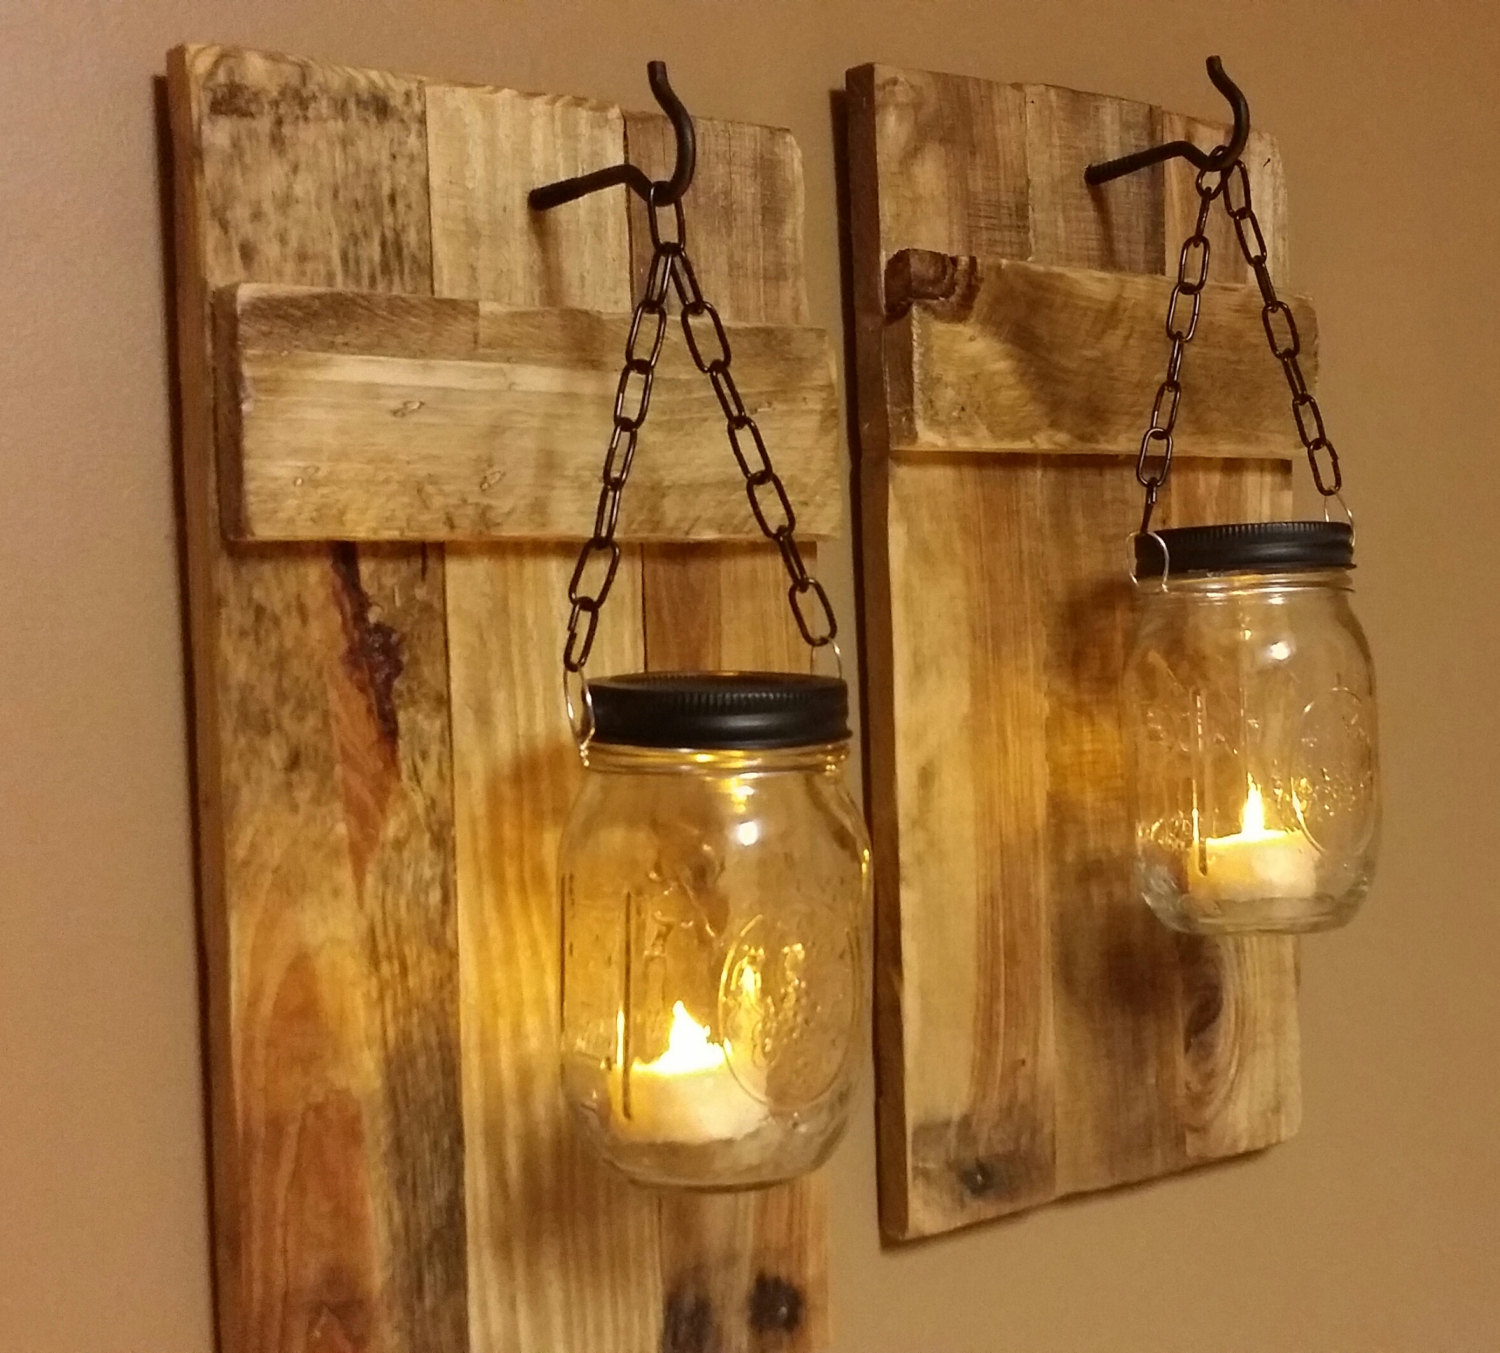 Decorating Ideas For Wall Sconces : DIY Mason Jar Sconce Making Tutorial - Mason Jar Crafts